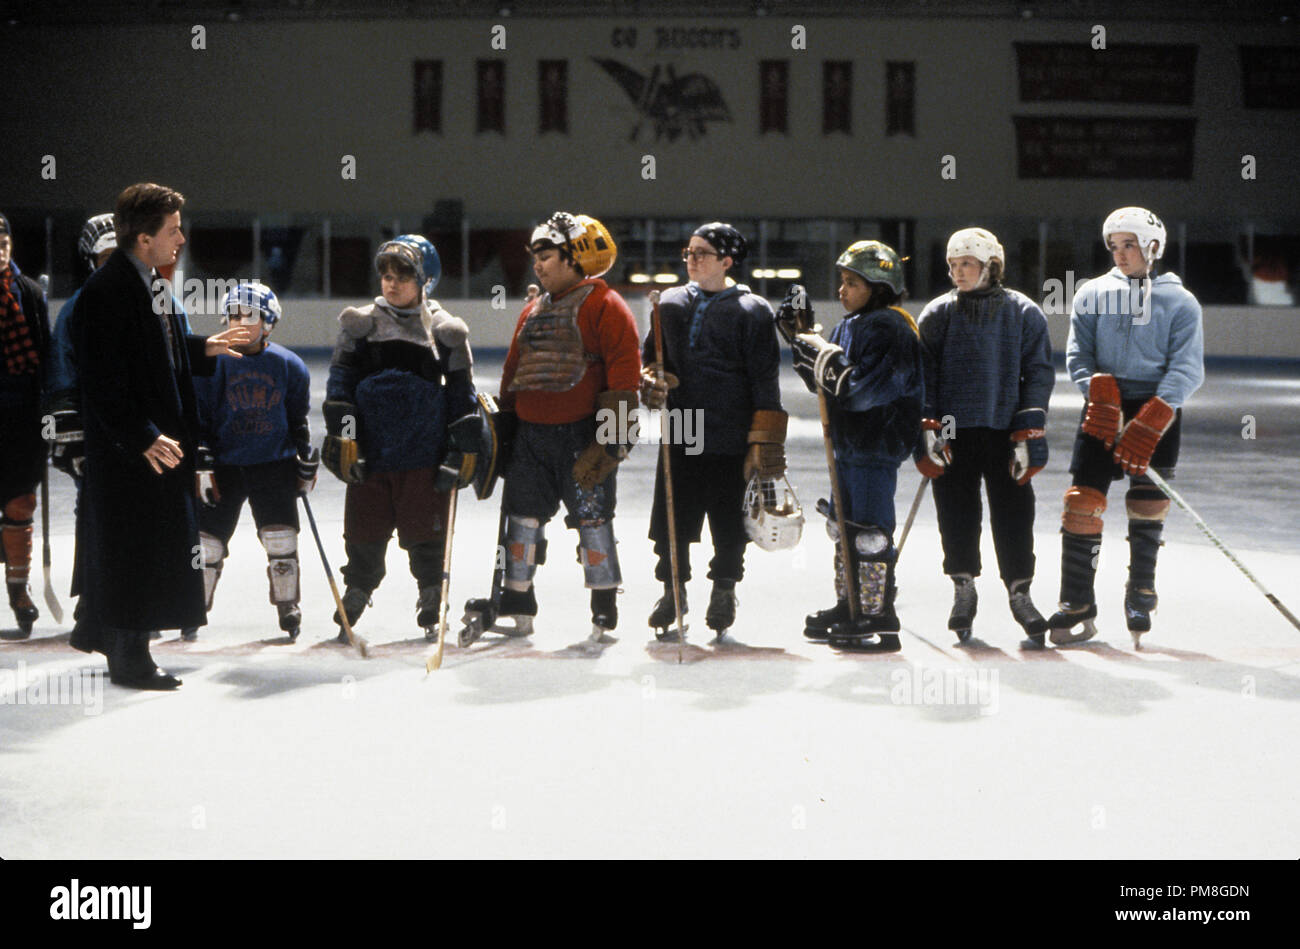 Film still or Publicity still from 'The Mighty Ducks' Emilio Estevez, Joshua Jackson, J.D. Daniels, Aaron Schwartz, Shaun Weiss, Jussie Smollett, Elden Henson, Marguerite Moreau © 1992 Walt Disney Pictures Photo Credit: Deborah Croswell  All Rights Reserved   File Reference # 31487_298THA  For Editorial Use Only - Stock Image